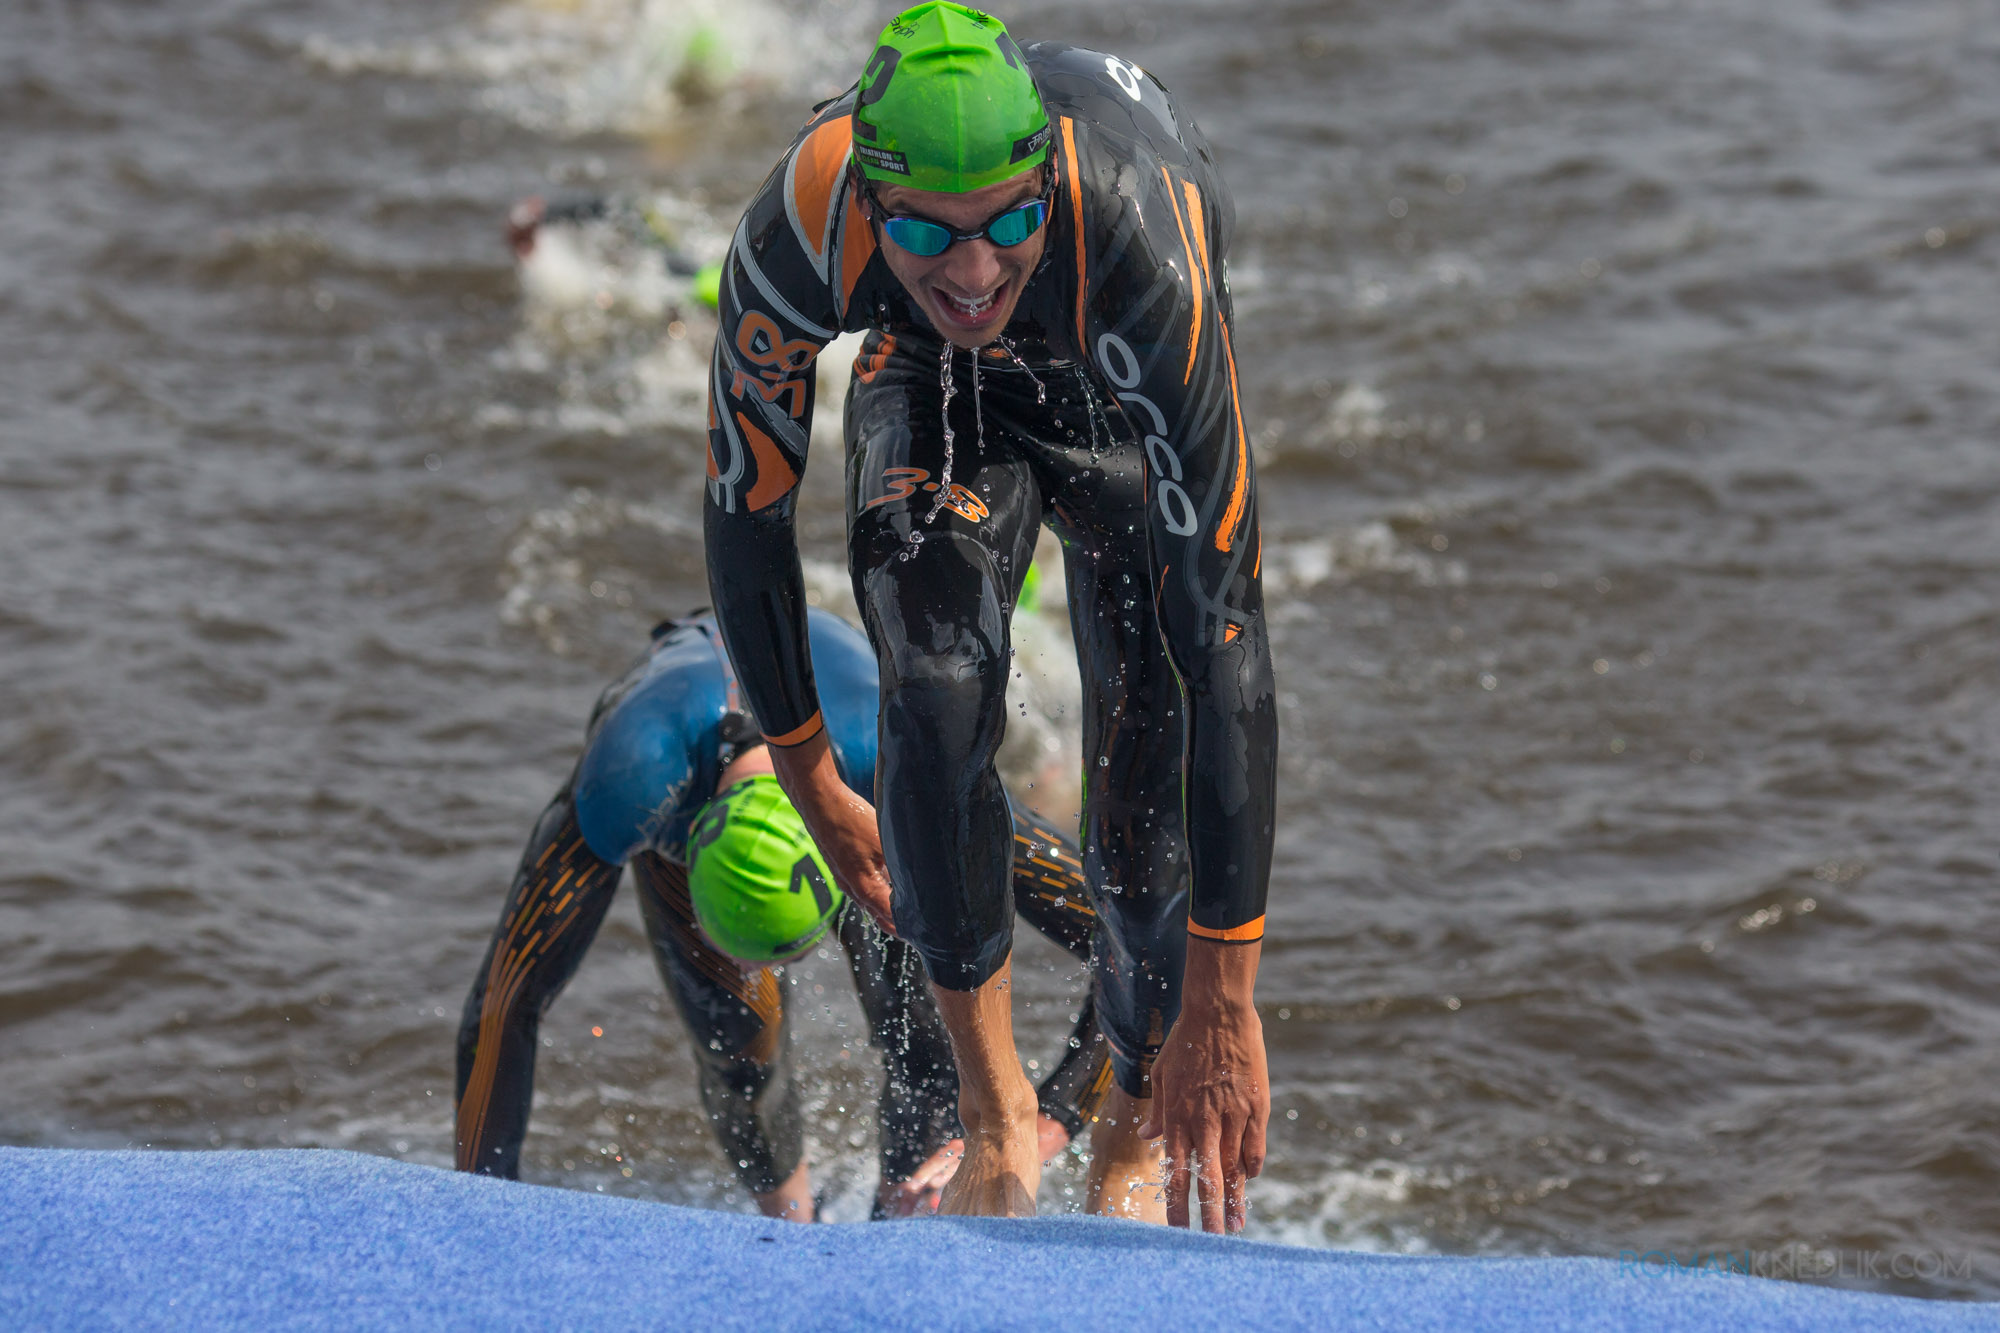 ICU_World_Cup_Triathlon_KV-34